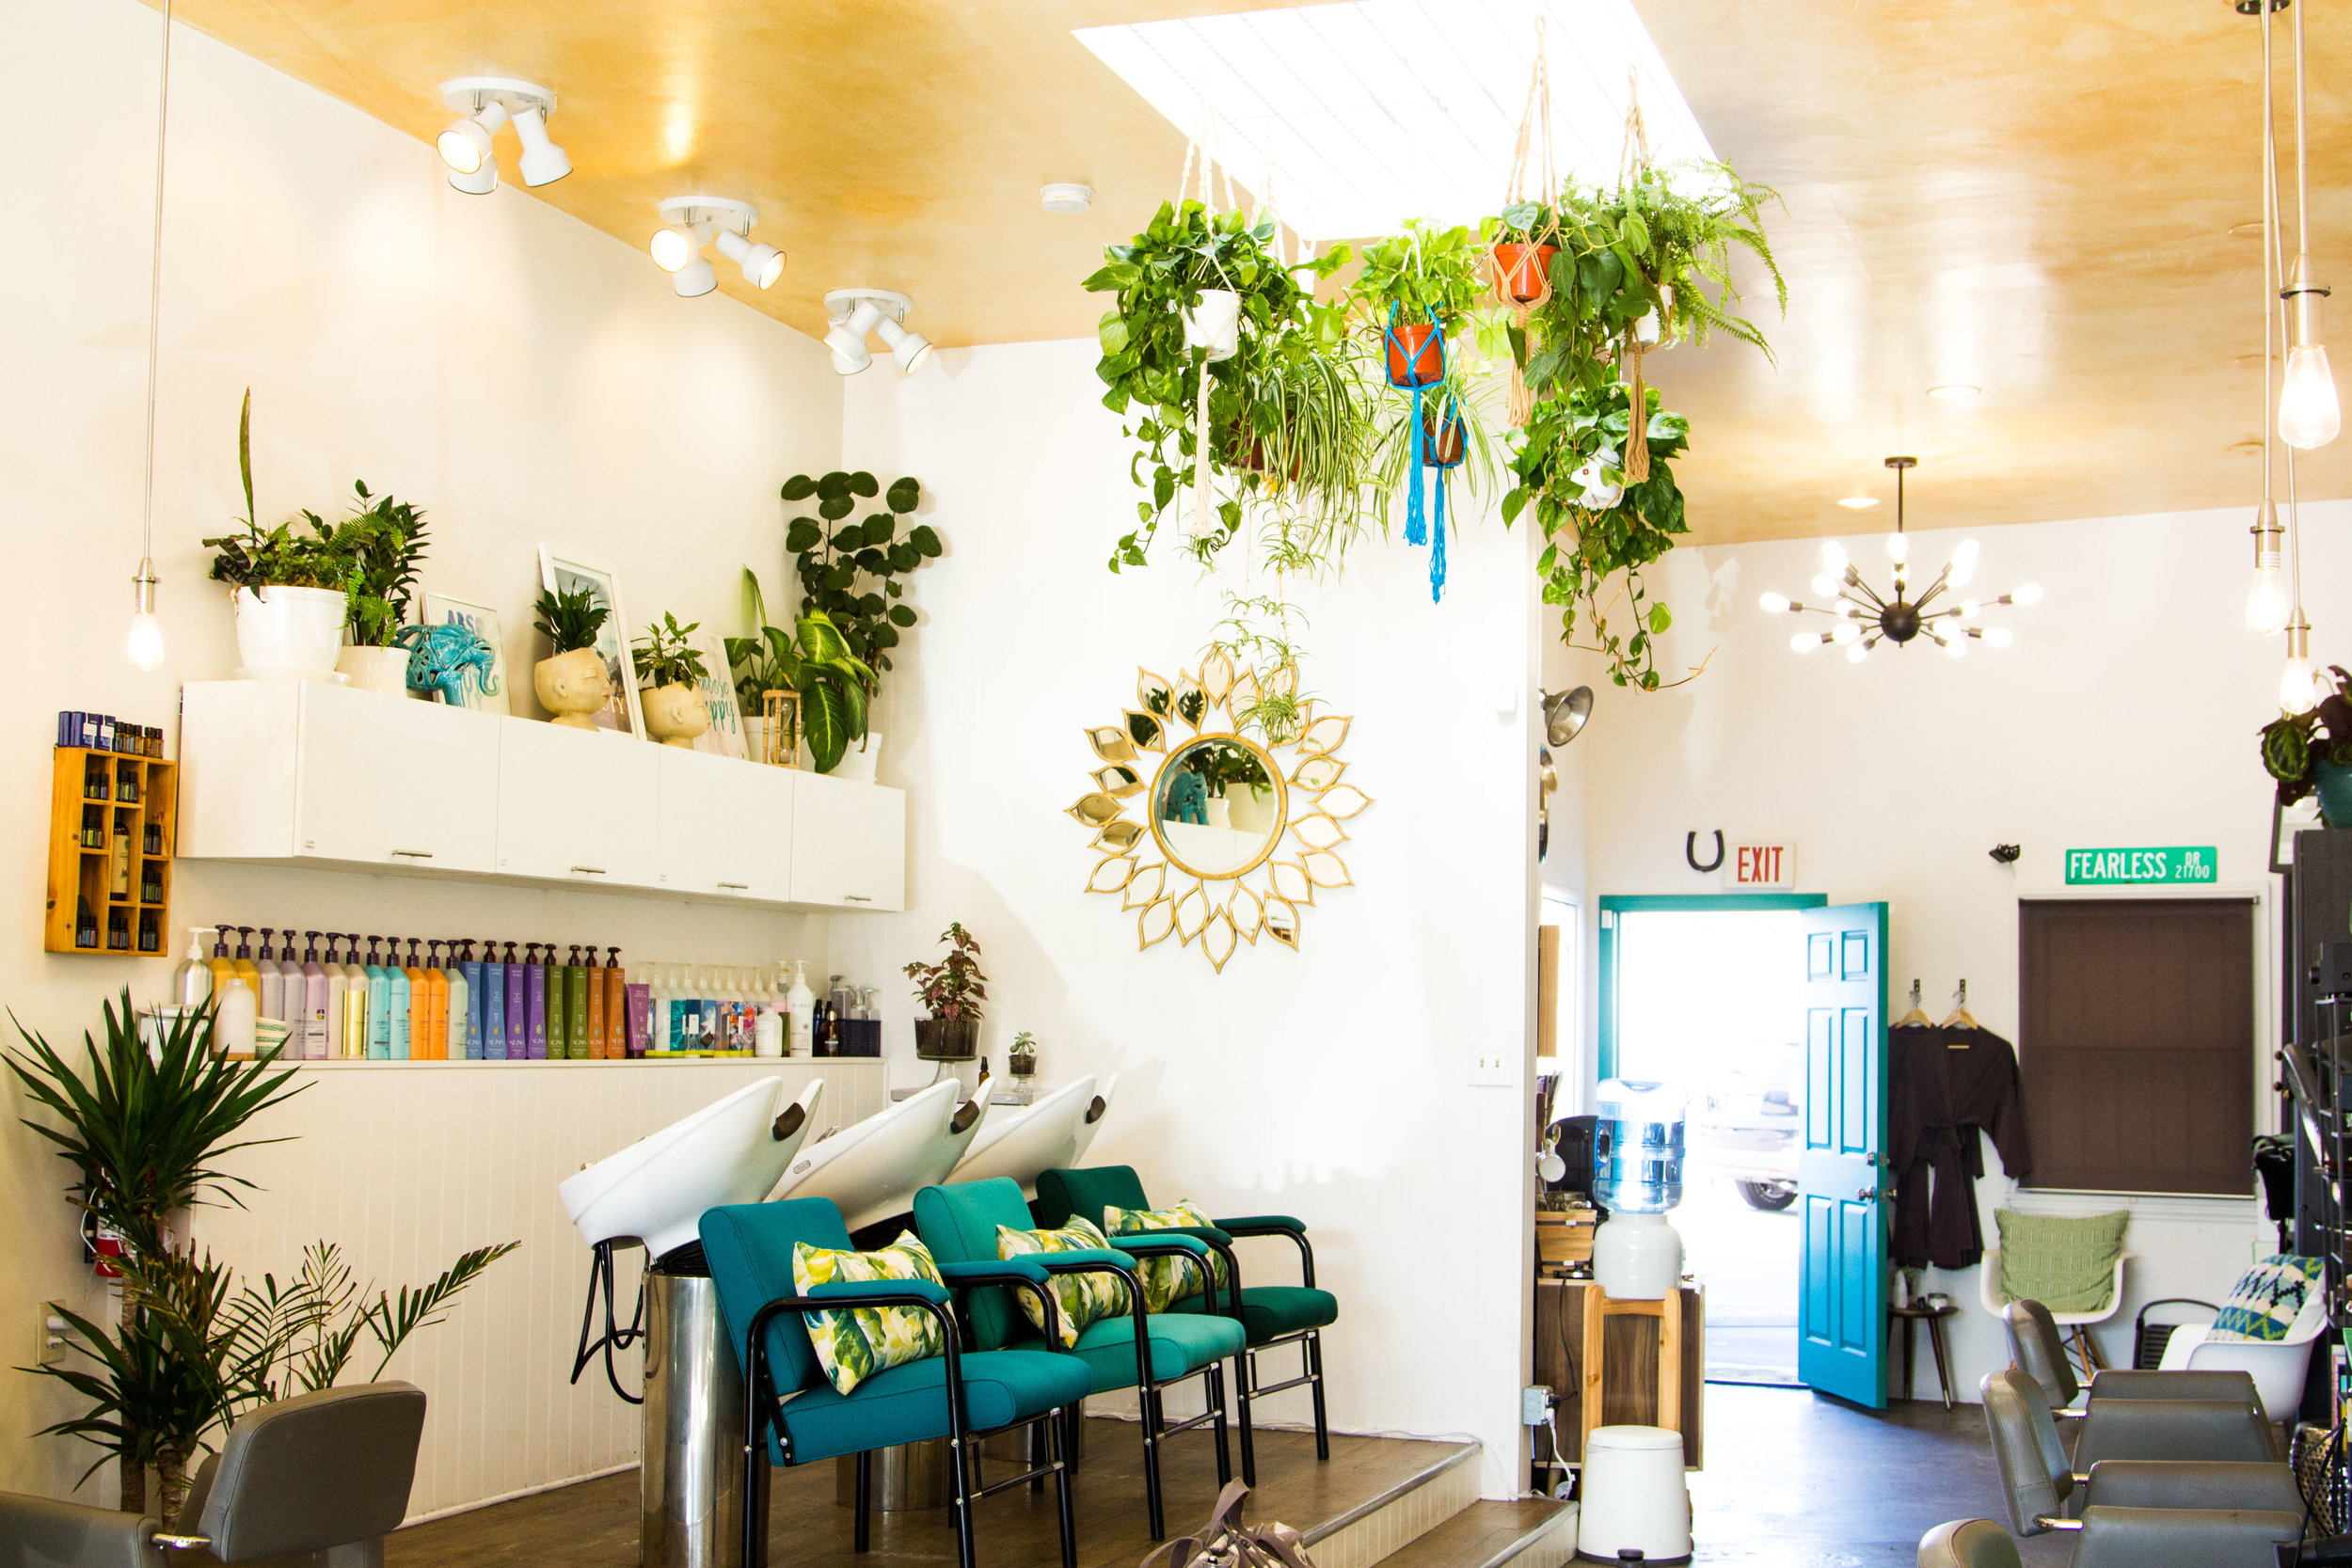 A new concept salon with a focus on mindful beauty practices. -